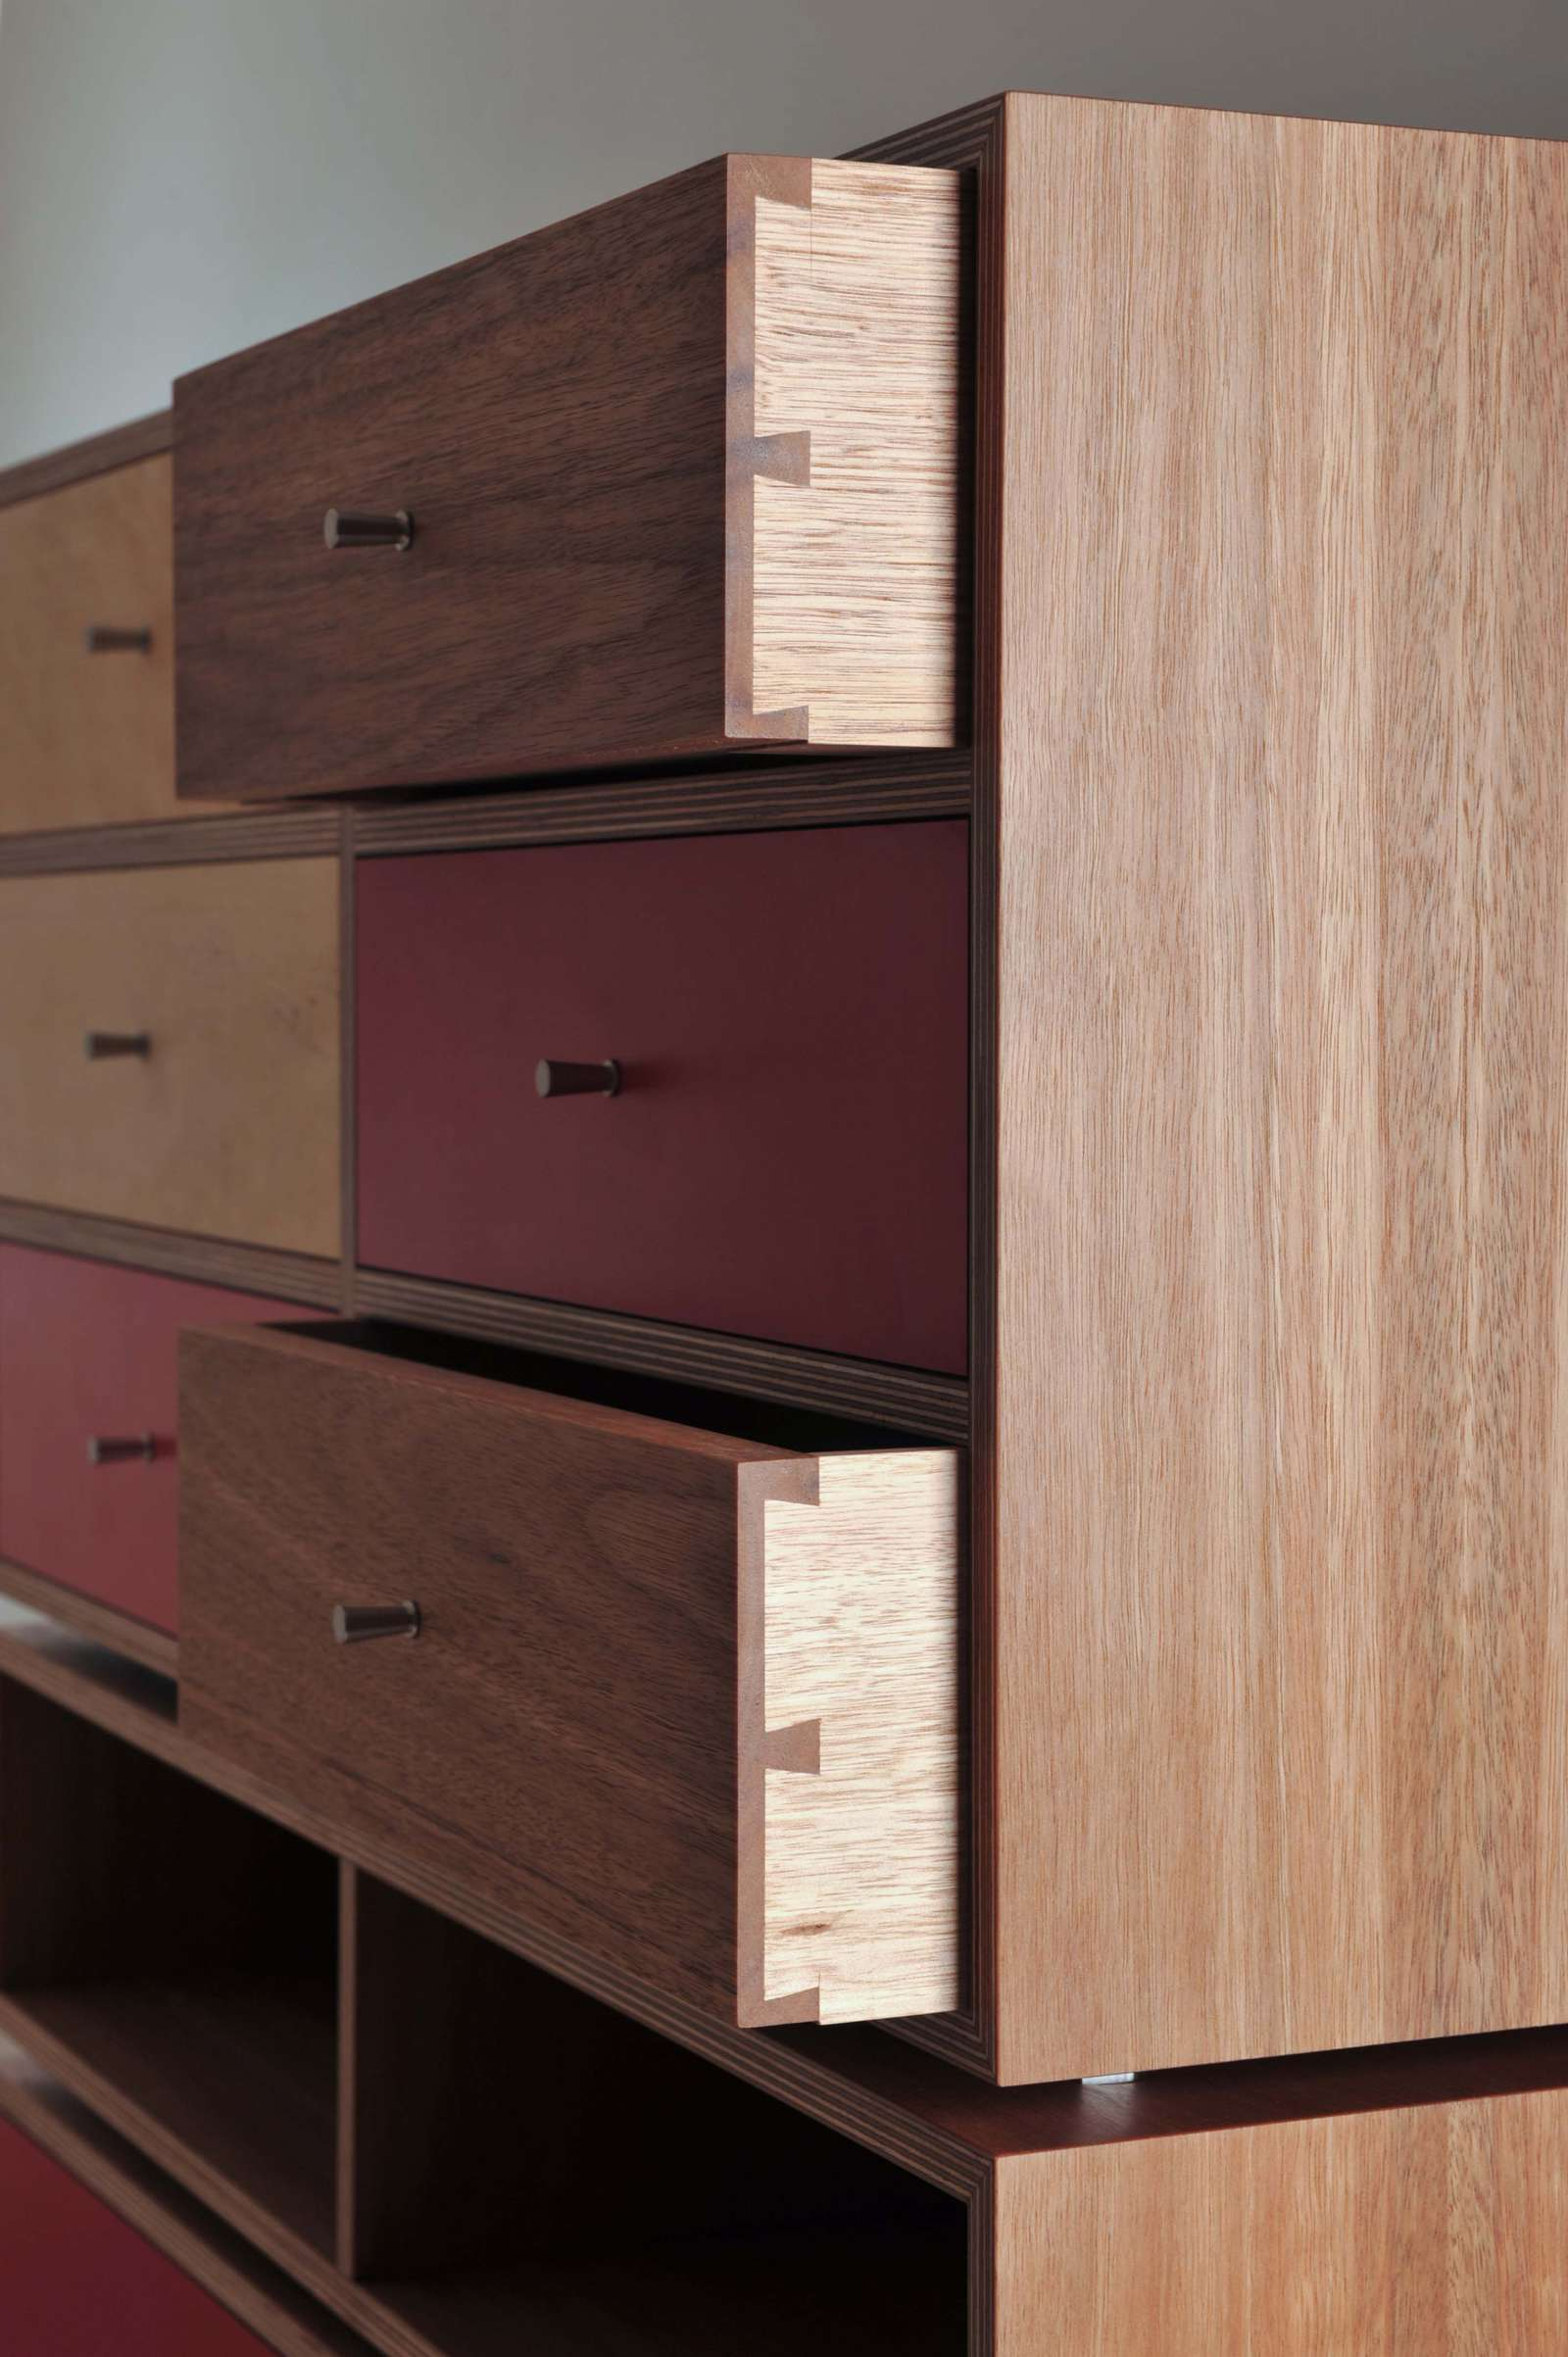 iankea-chest-of-drawers-4 image